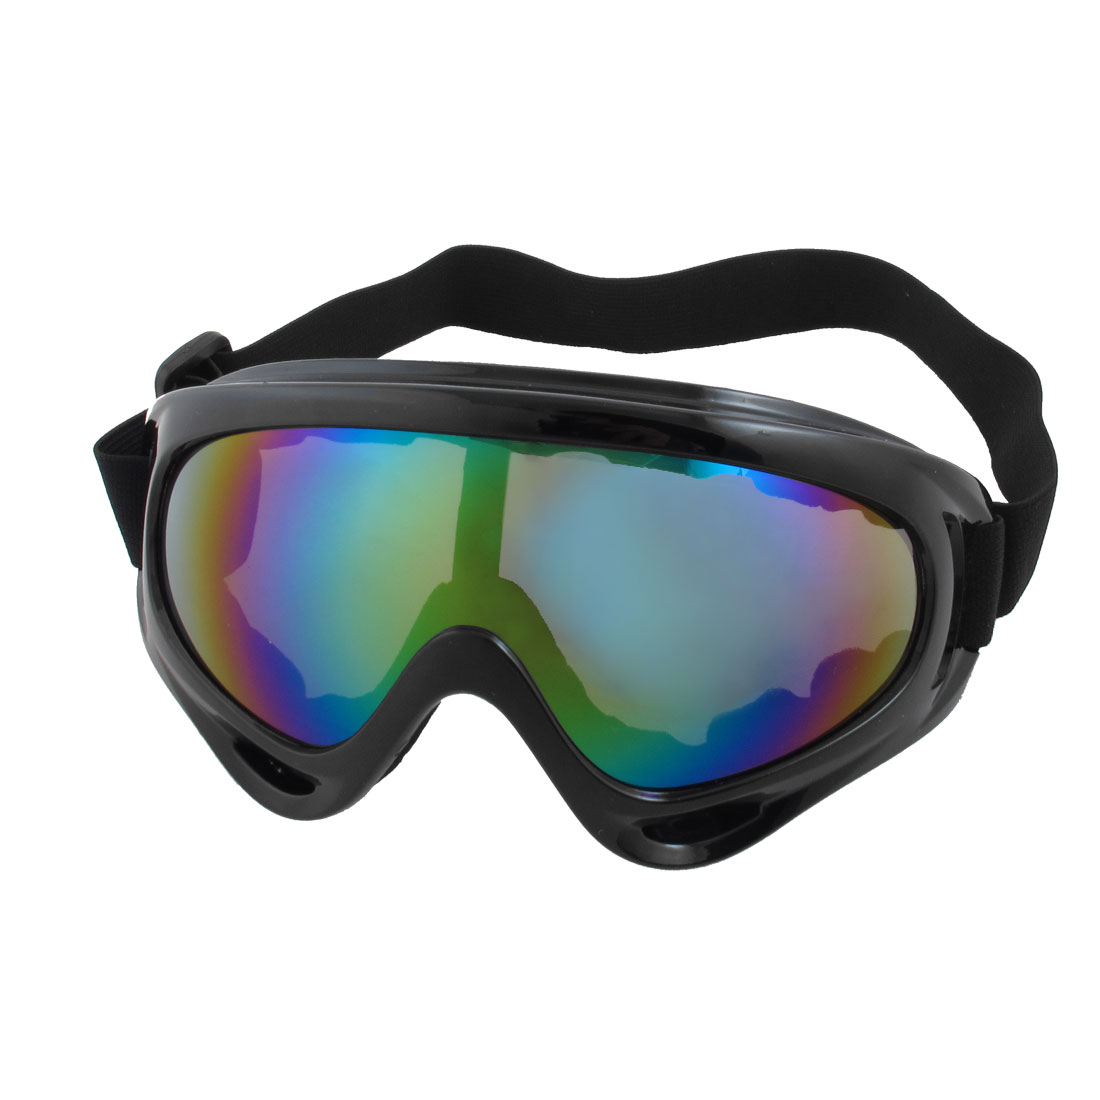 Sport Glasses Safety Goggles Hunting Ski Snowboarding Protection by Unique-Bargains